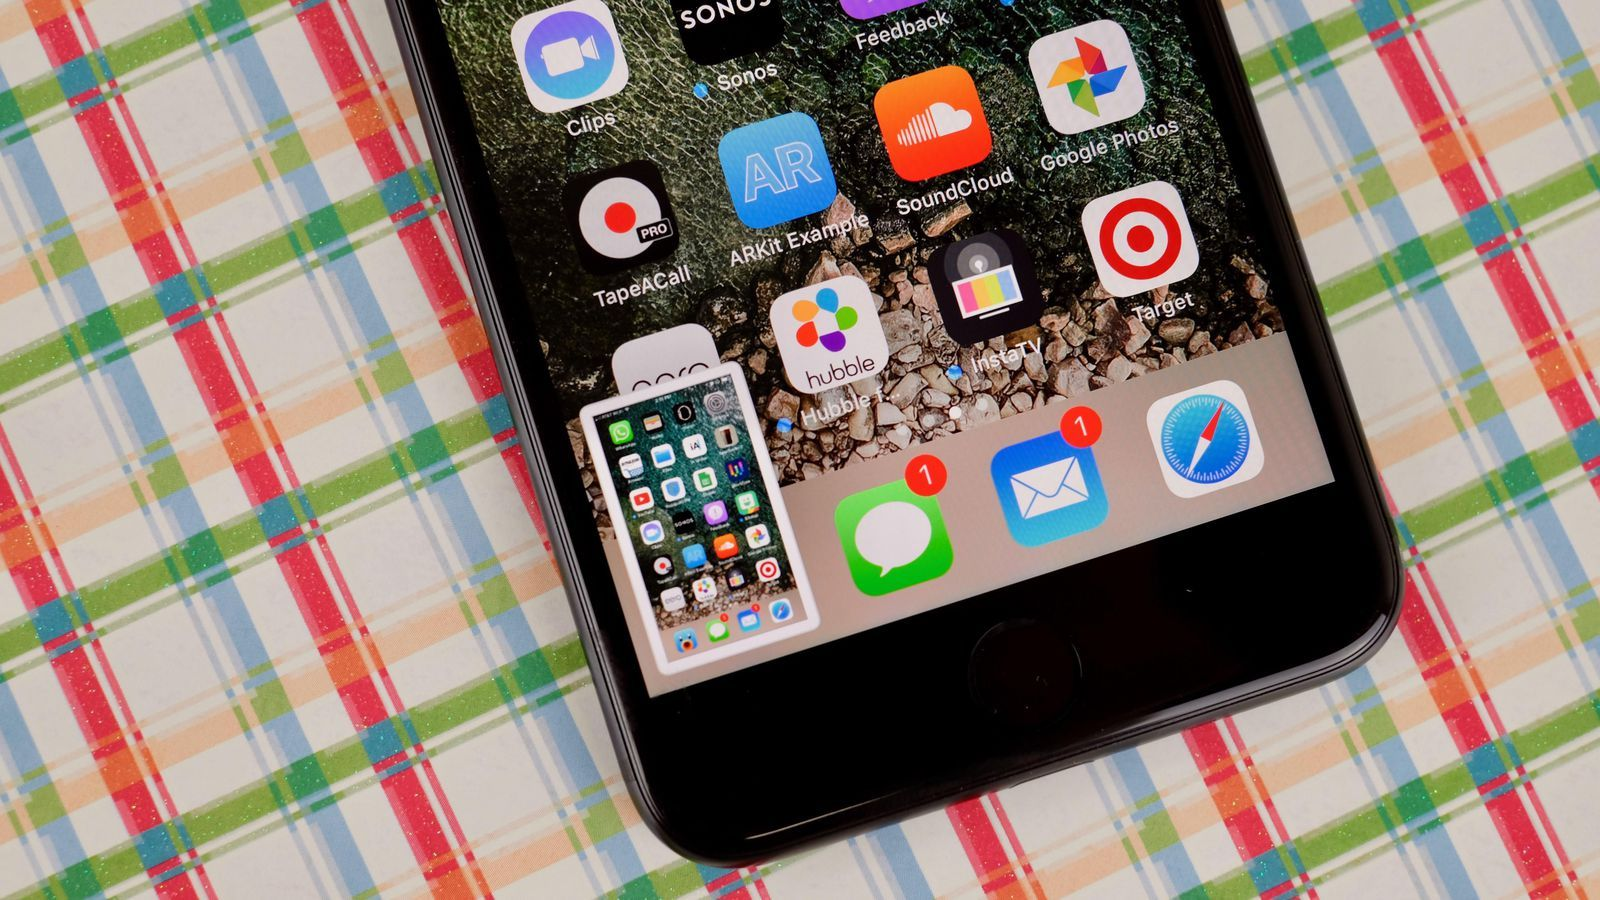 Apple added some muchneeded features to iOS 11's